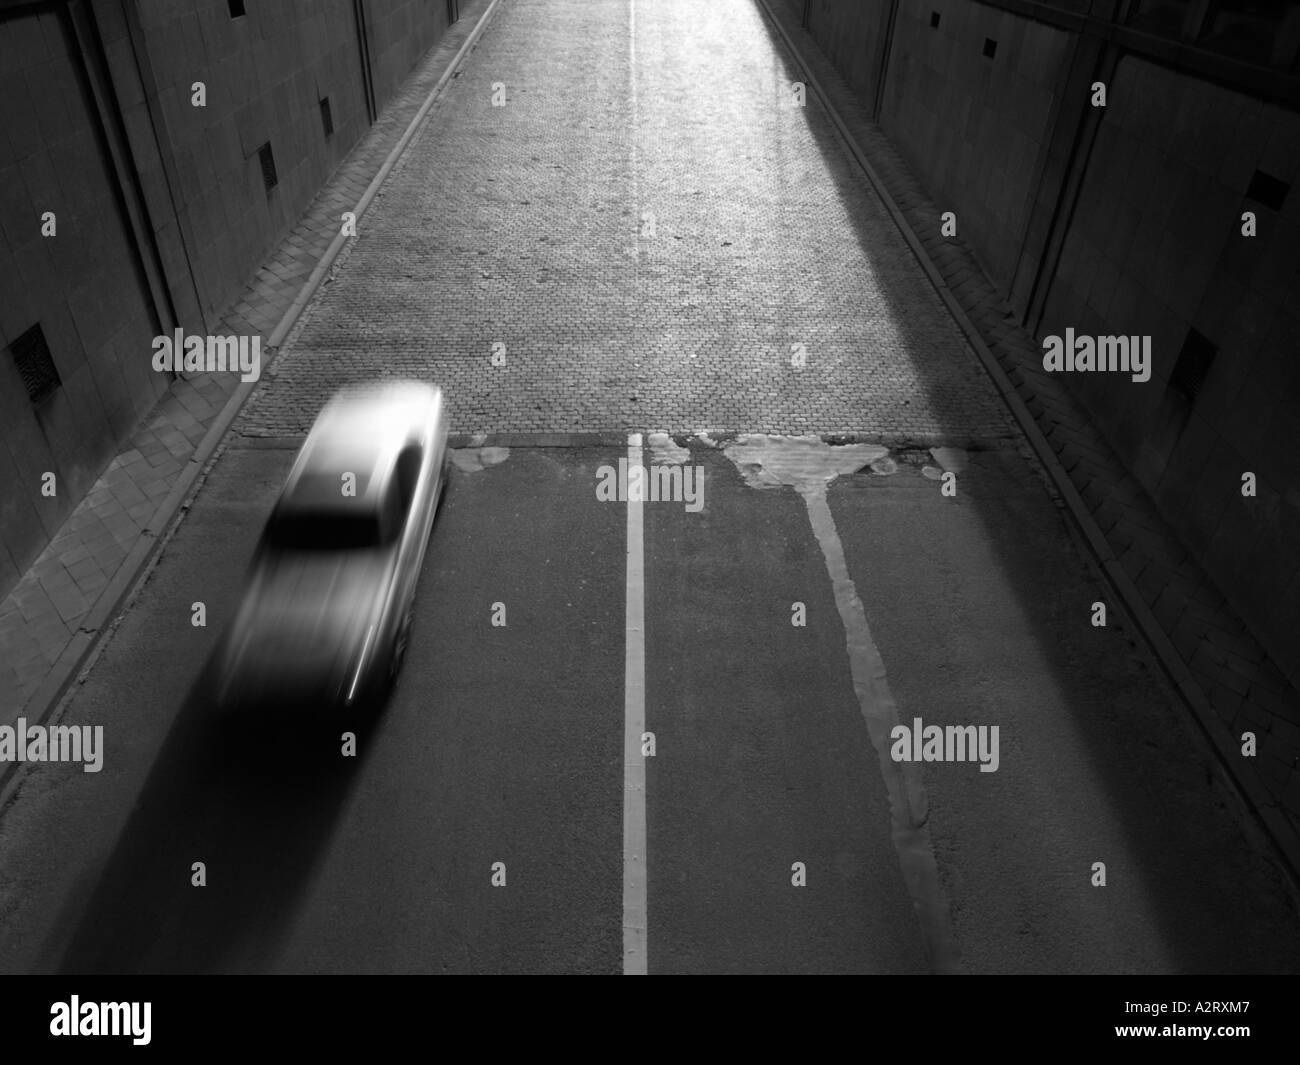 Silver car Mercedes speeding into tunnel Brussels Belgium motion blur monochrome black and white Stock Foto